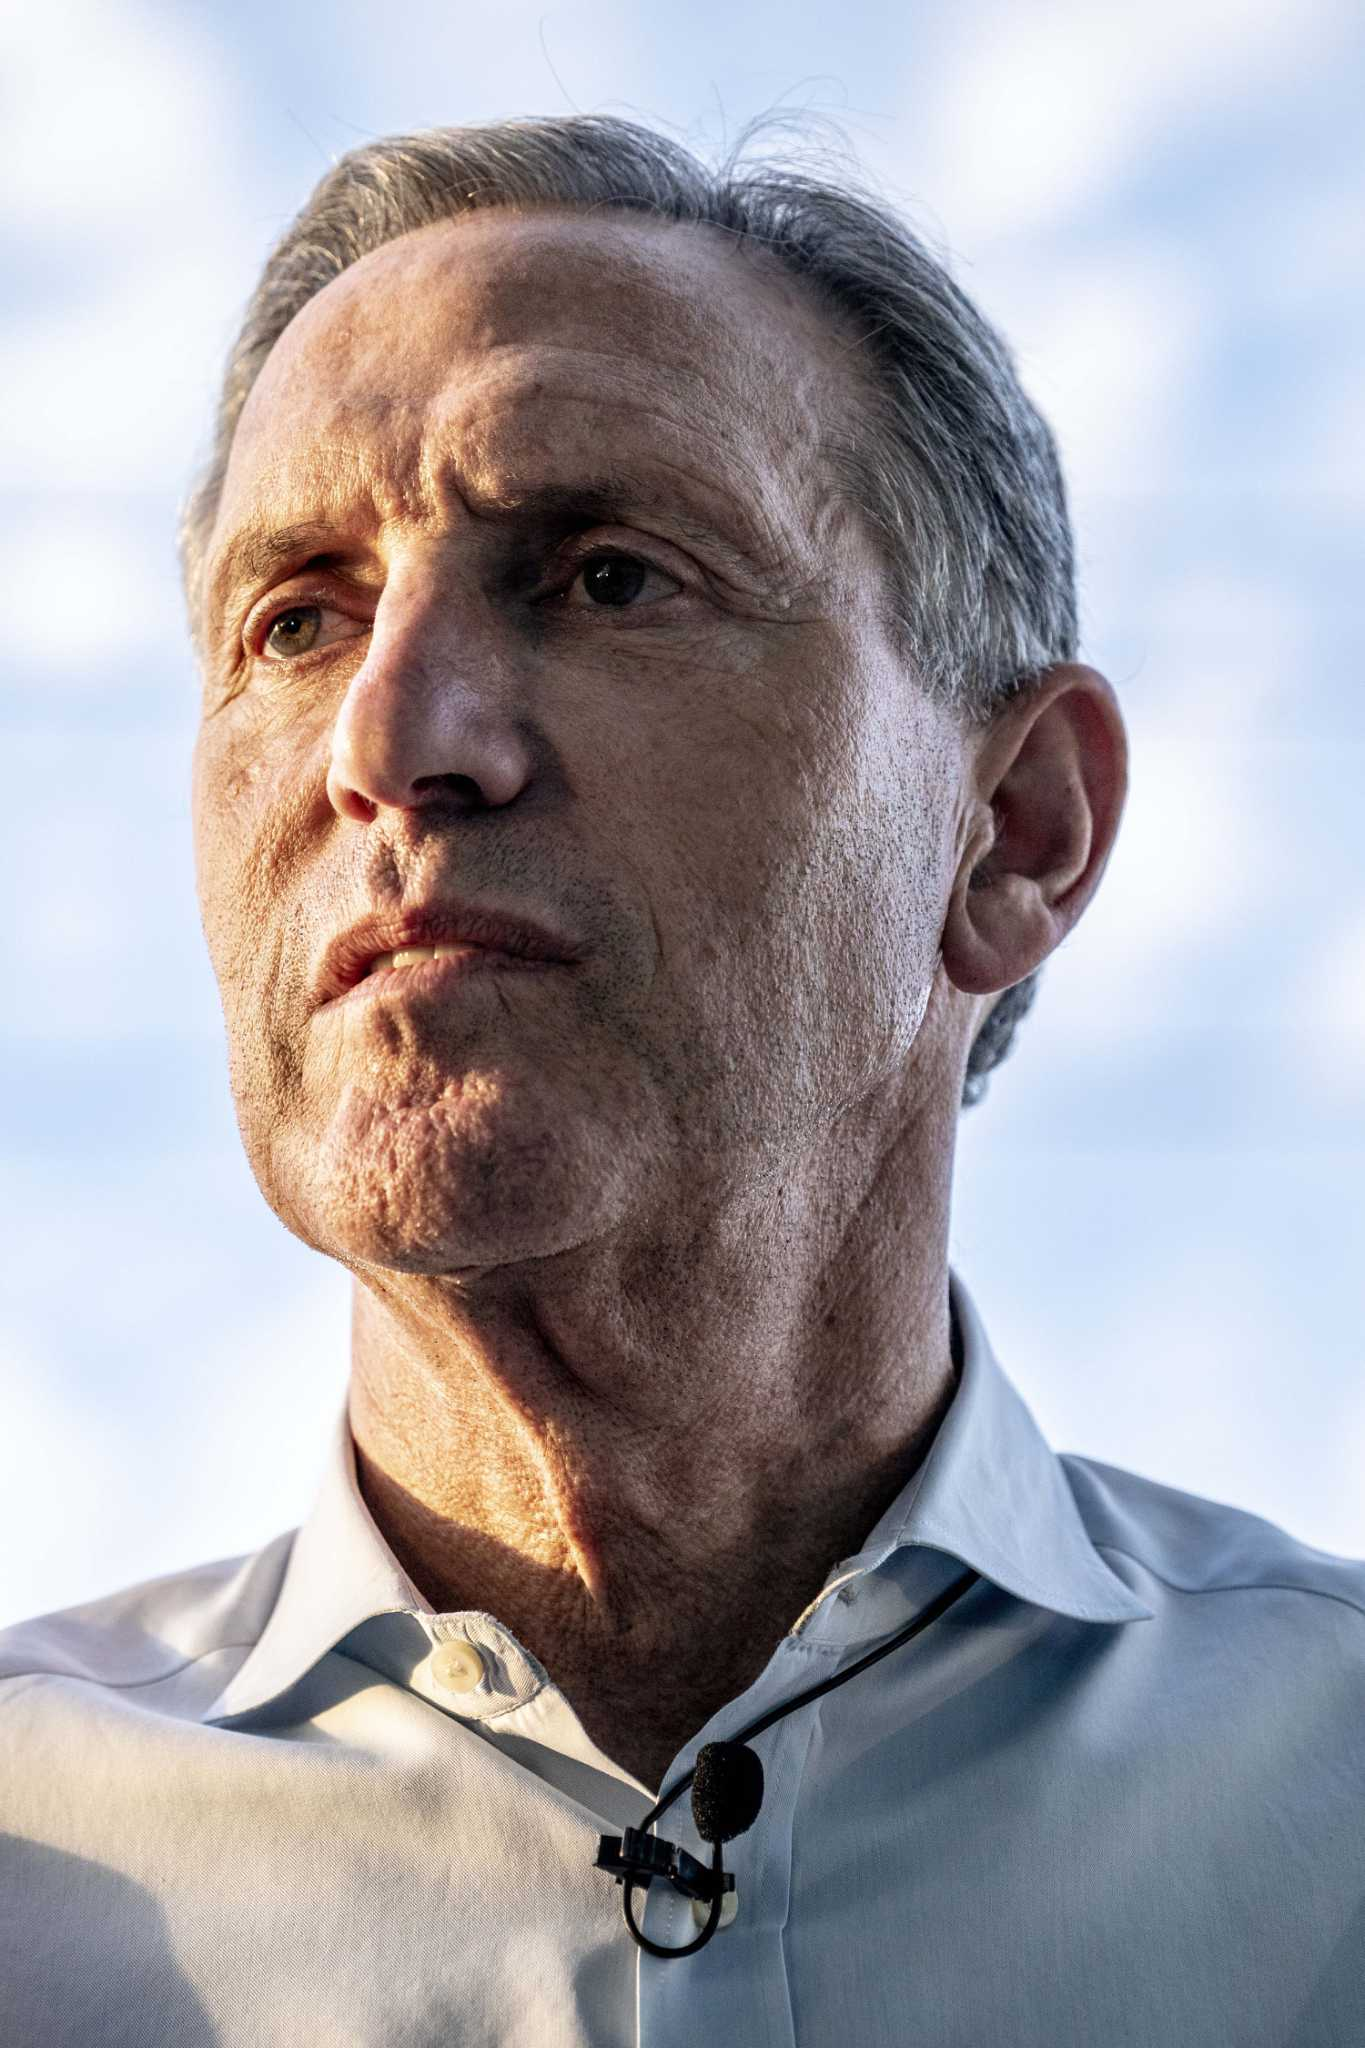 Is centrism doomed? The cautionary tale of Howard Schultz - and the surprising promise of a populist center